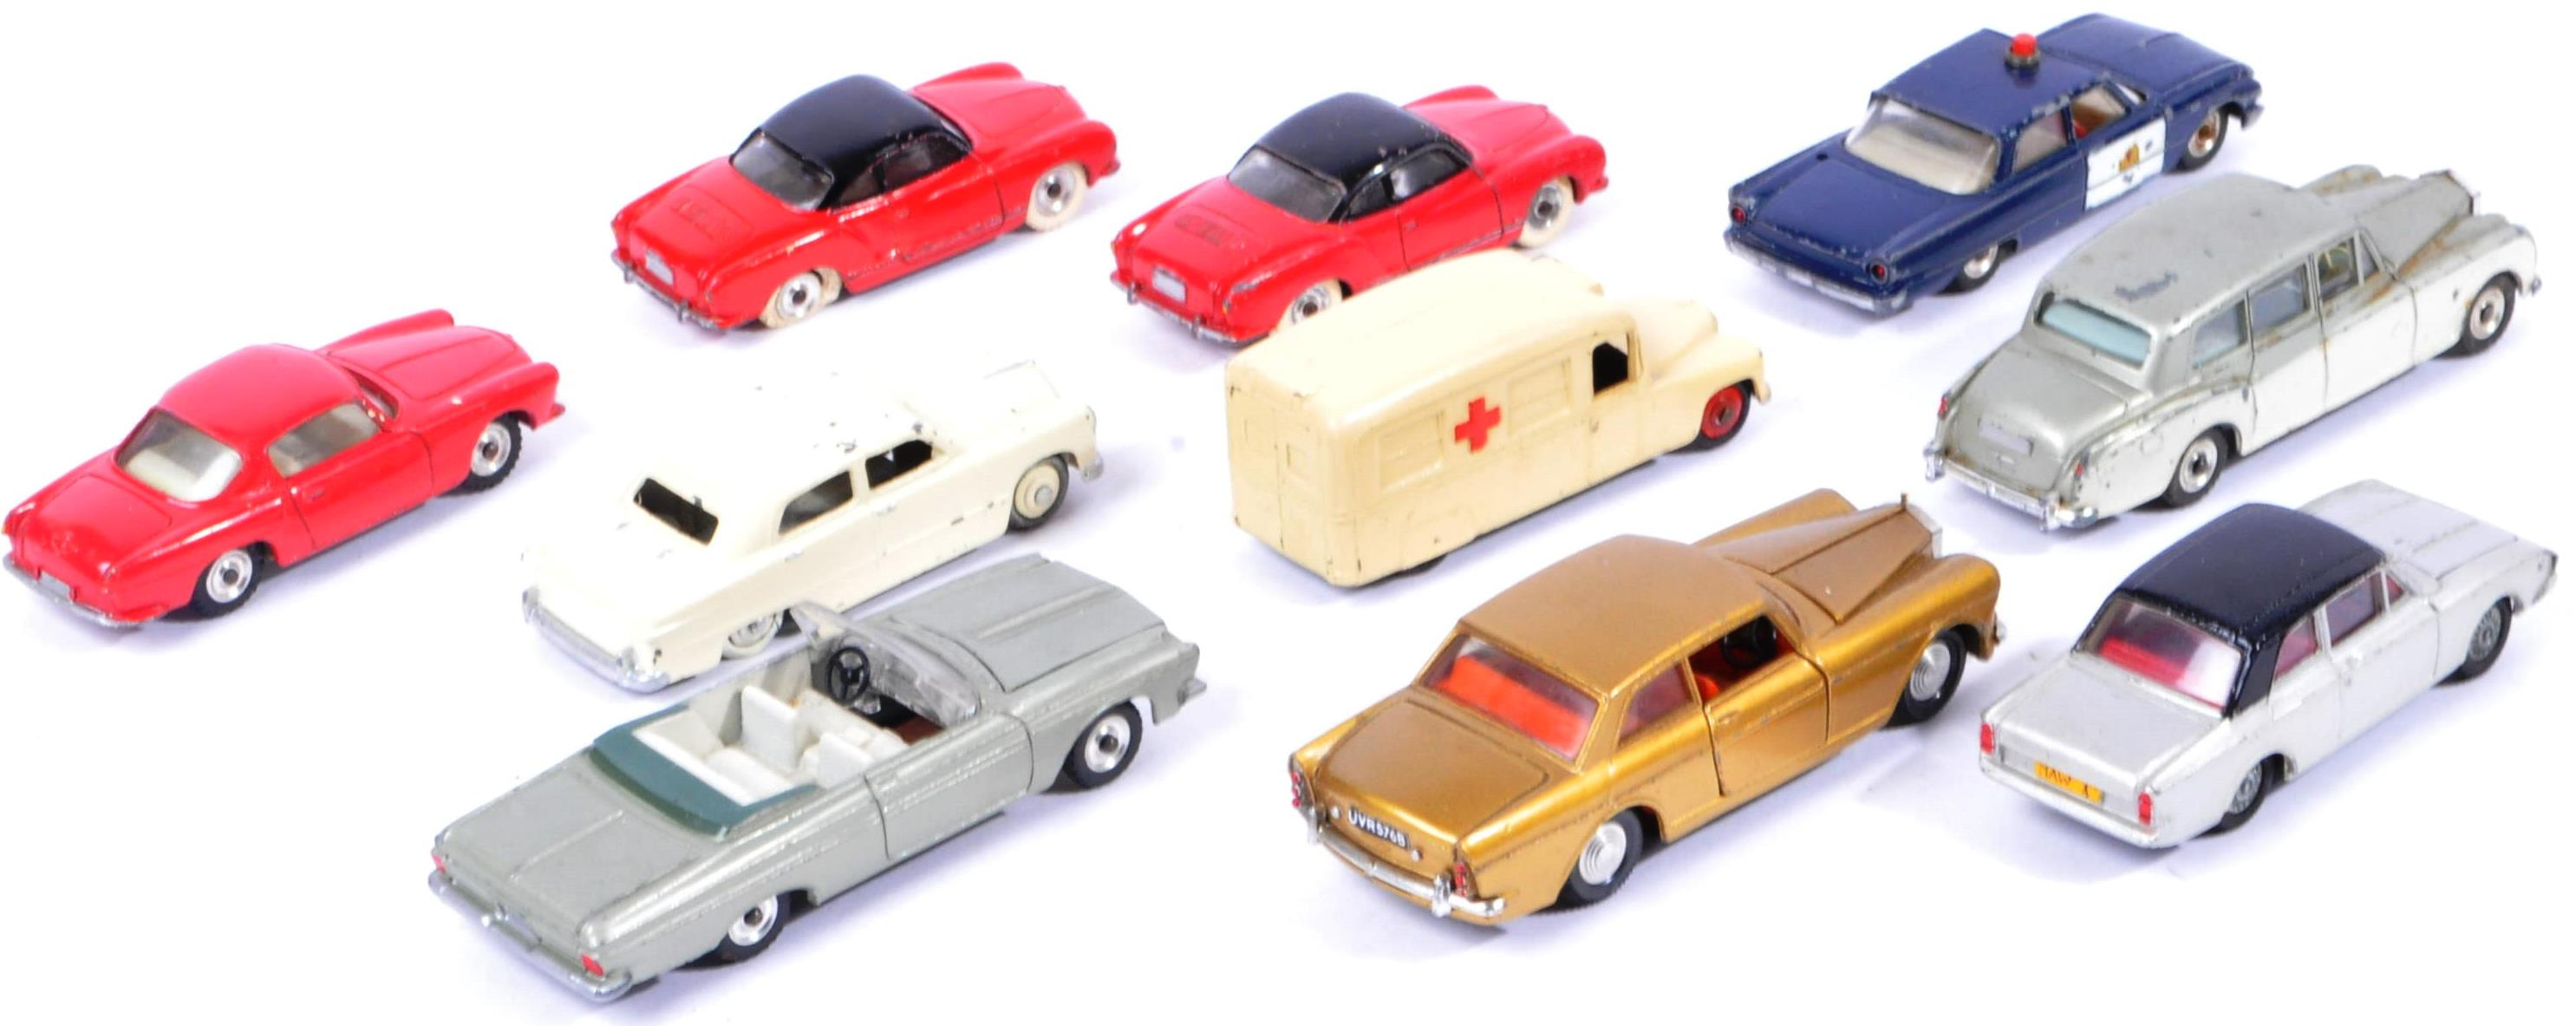 COLLECTION OF X10 VINTAGE DINKY TOYS DIECAST MODEL VEHICLES - Image 6 of 7